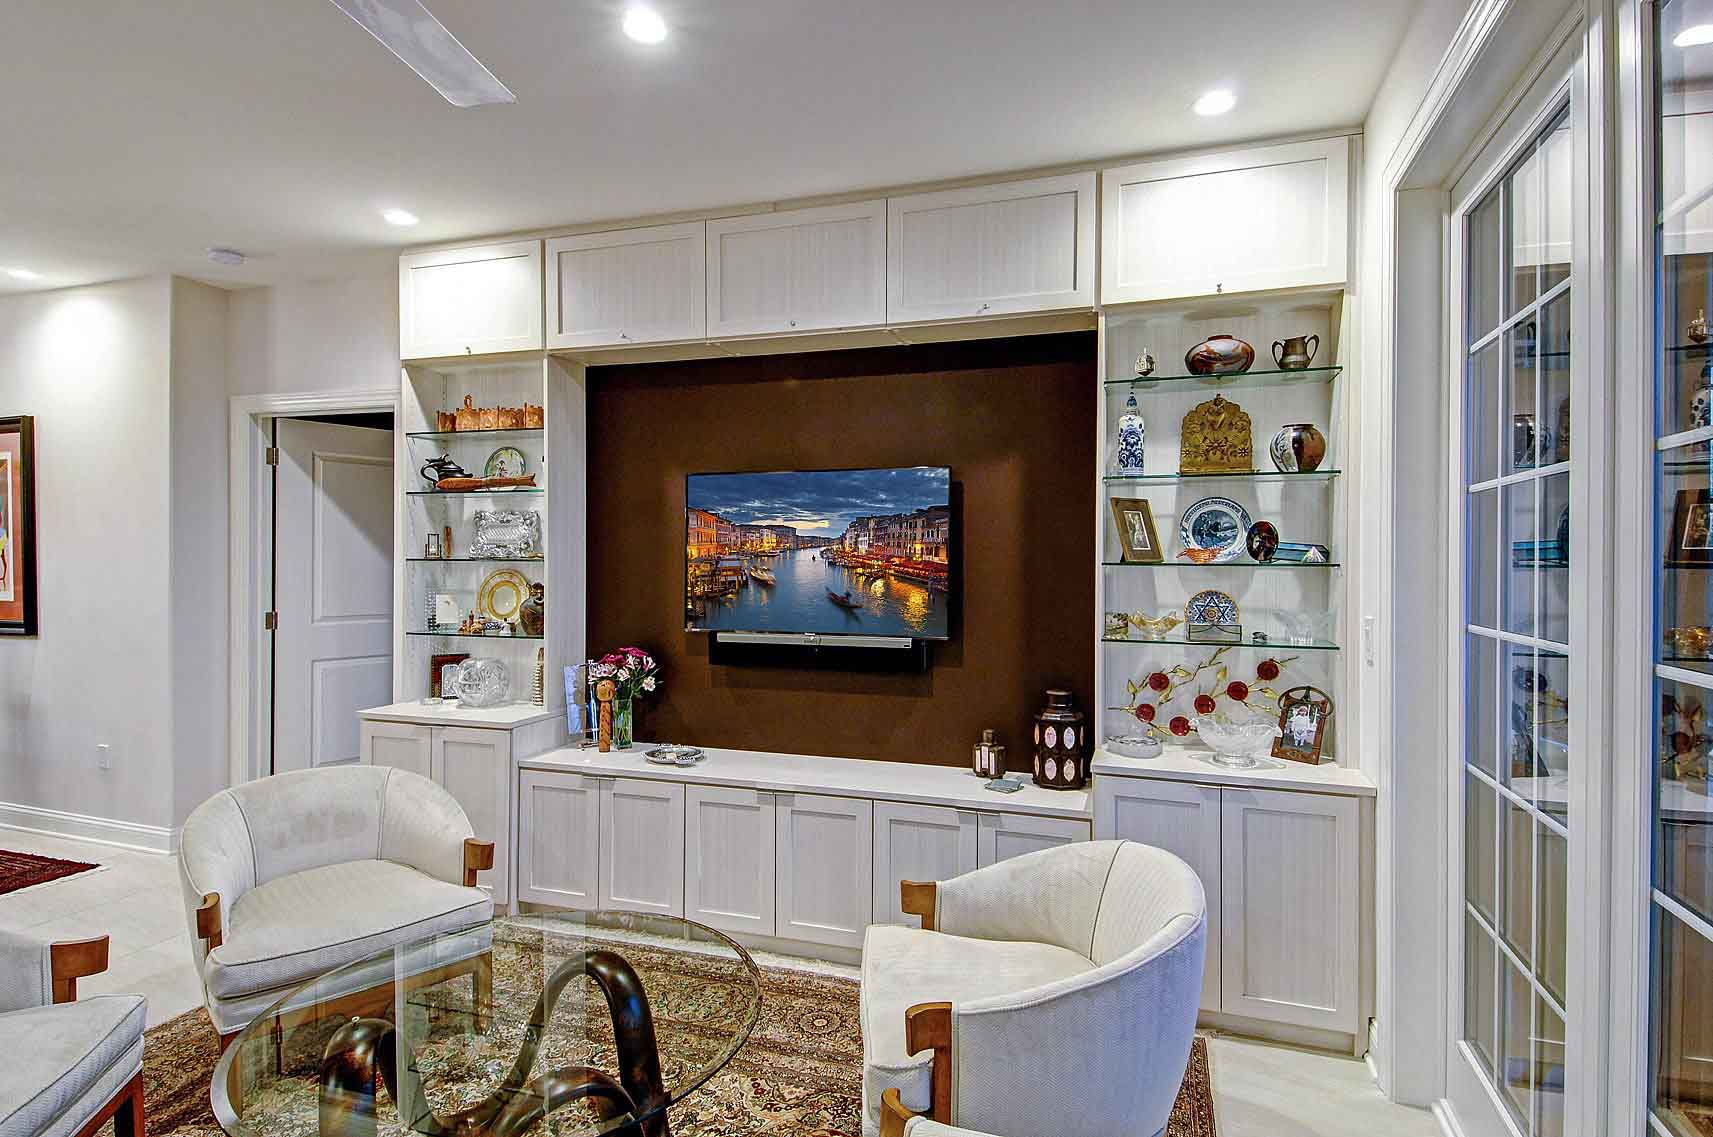 Media Center Design Ideas For A Clutter-Free Room